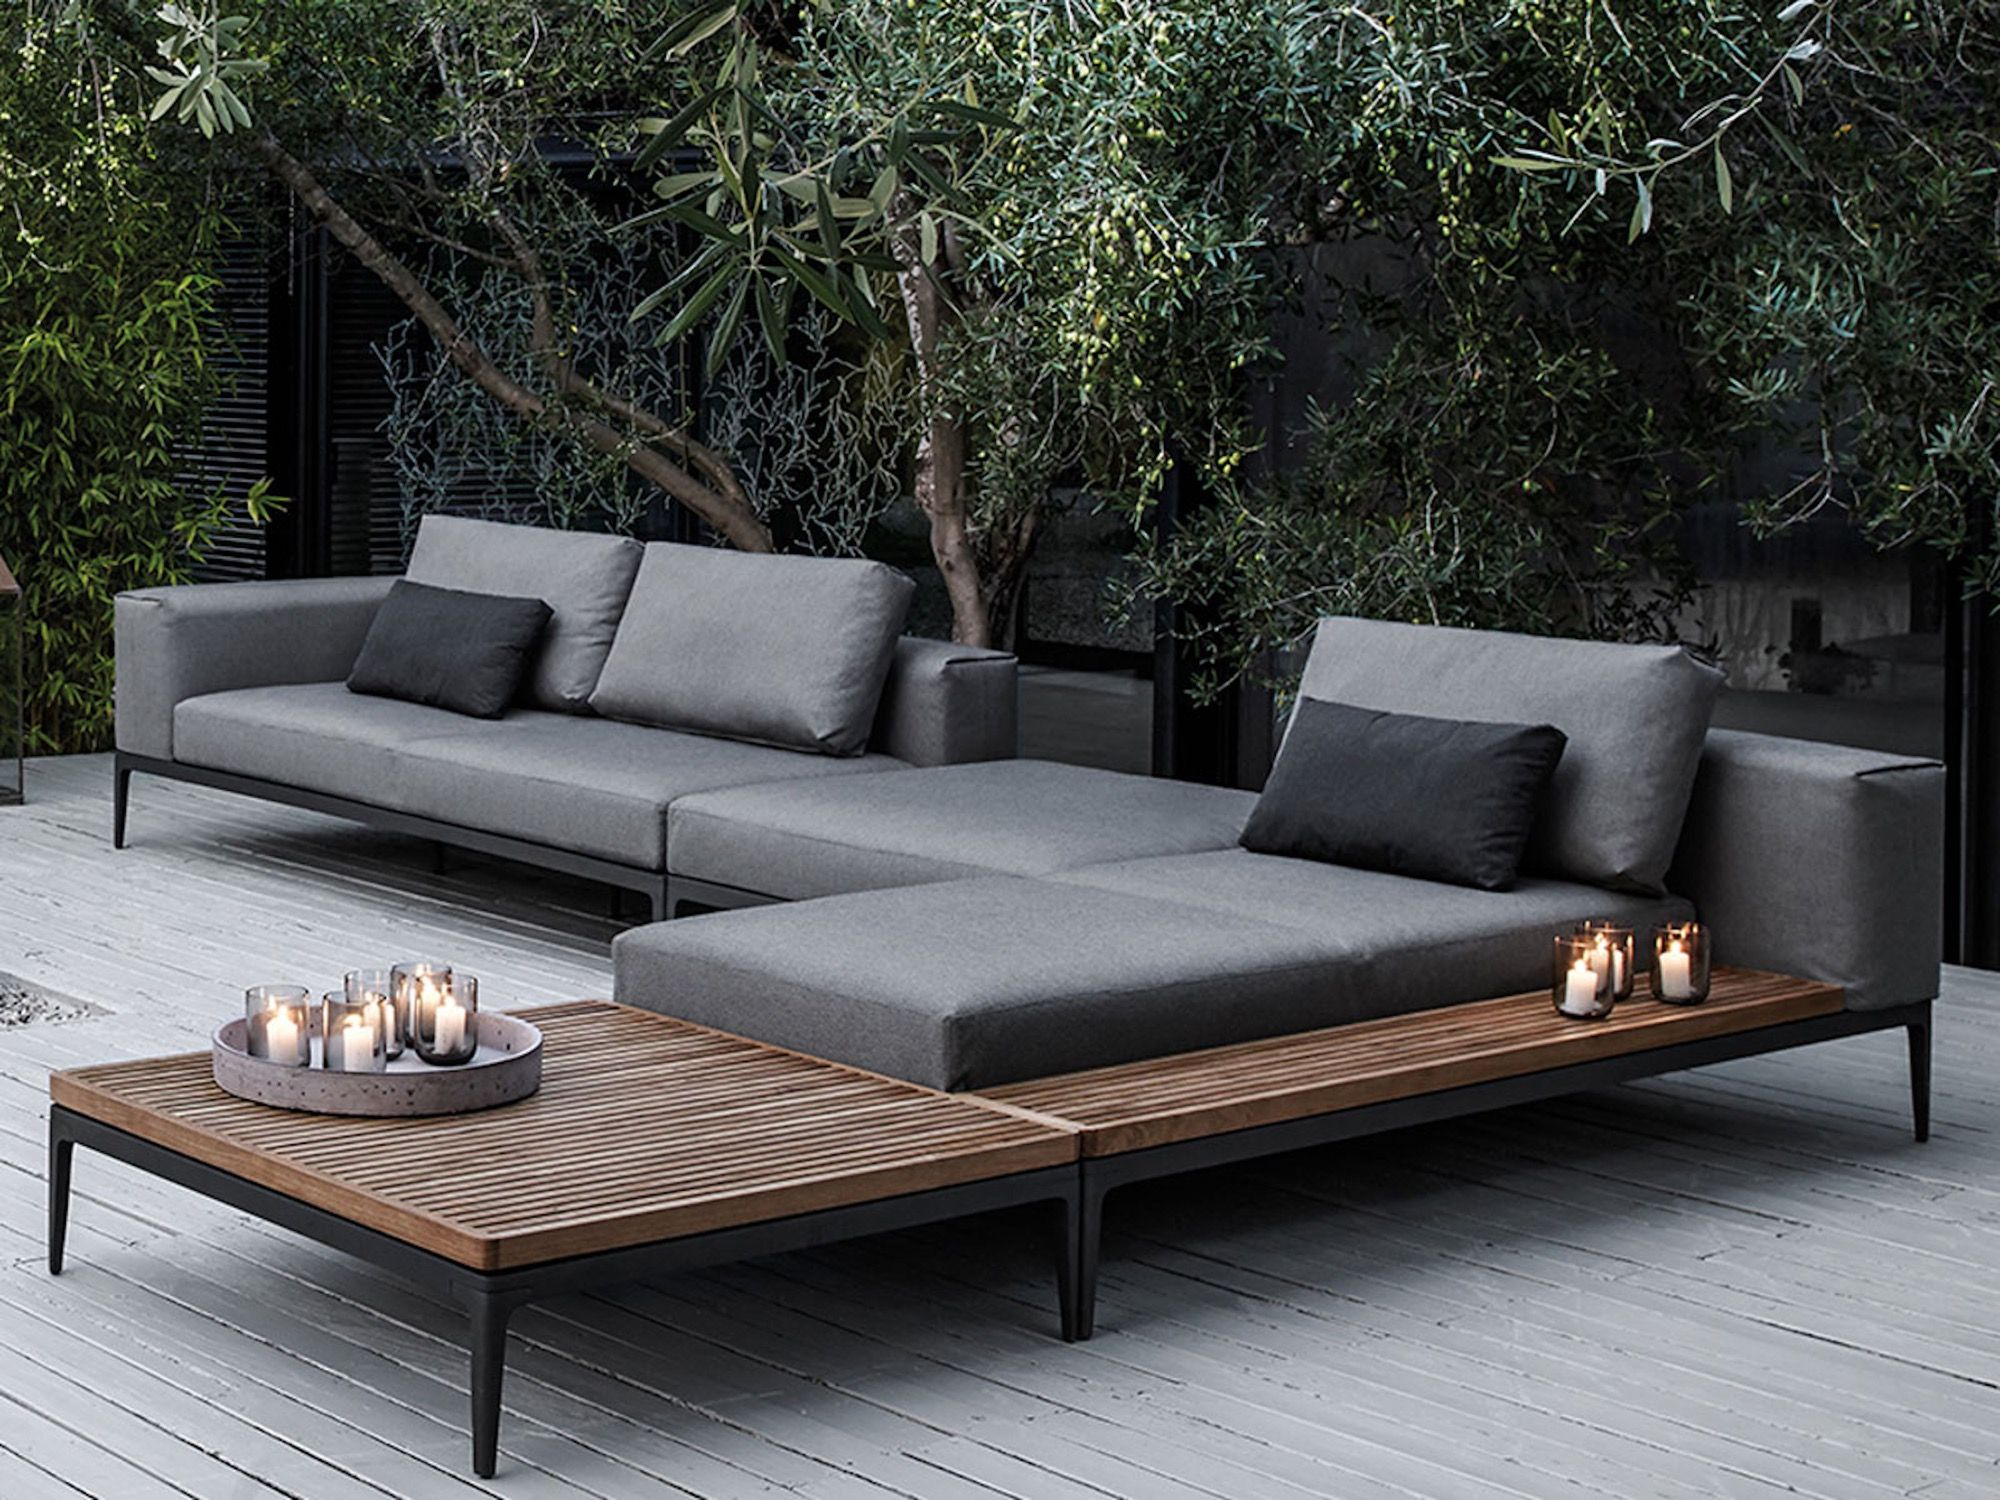 Chestnut Hill Philadelphia Pa Outdoor Furniture Company Redfin Zillow Park Whole